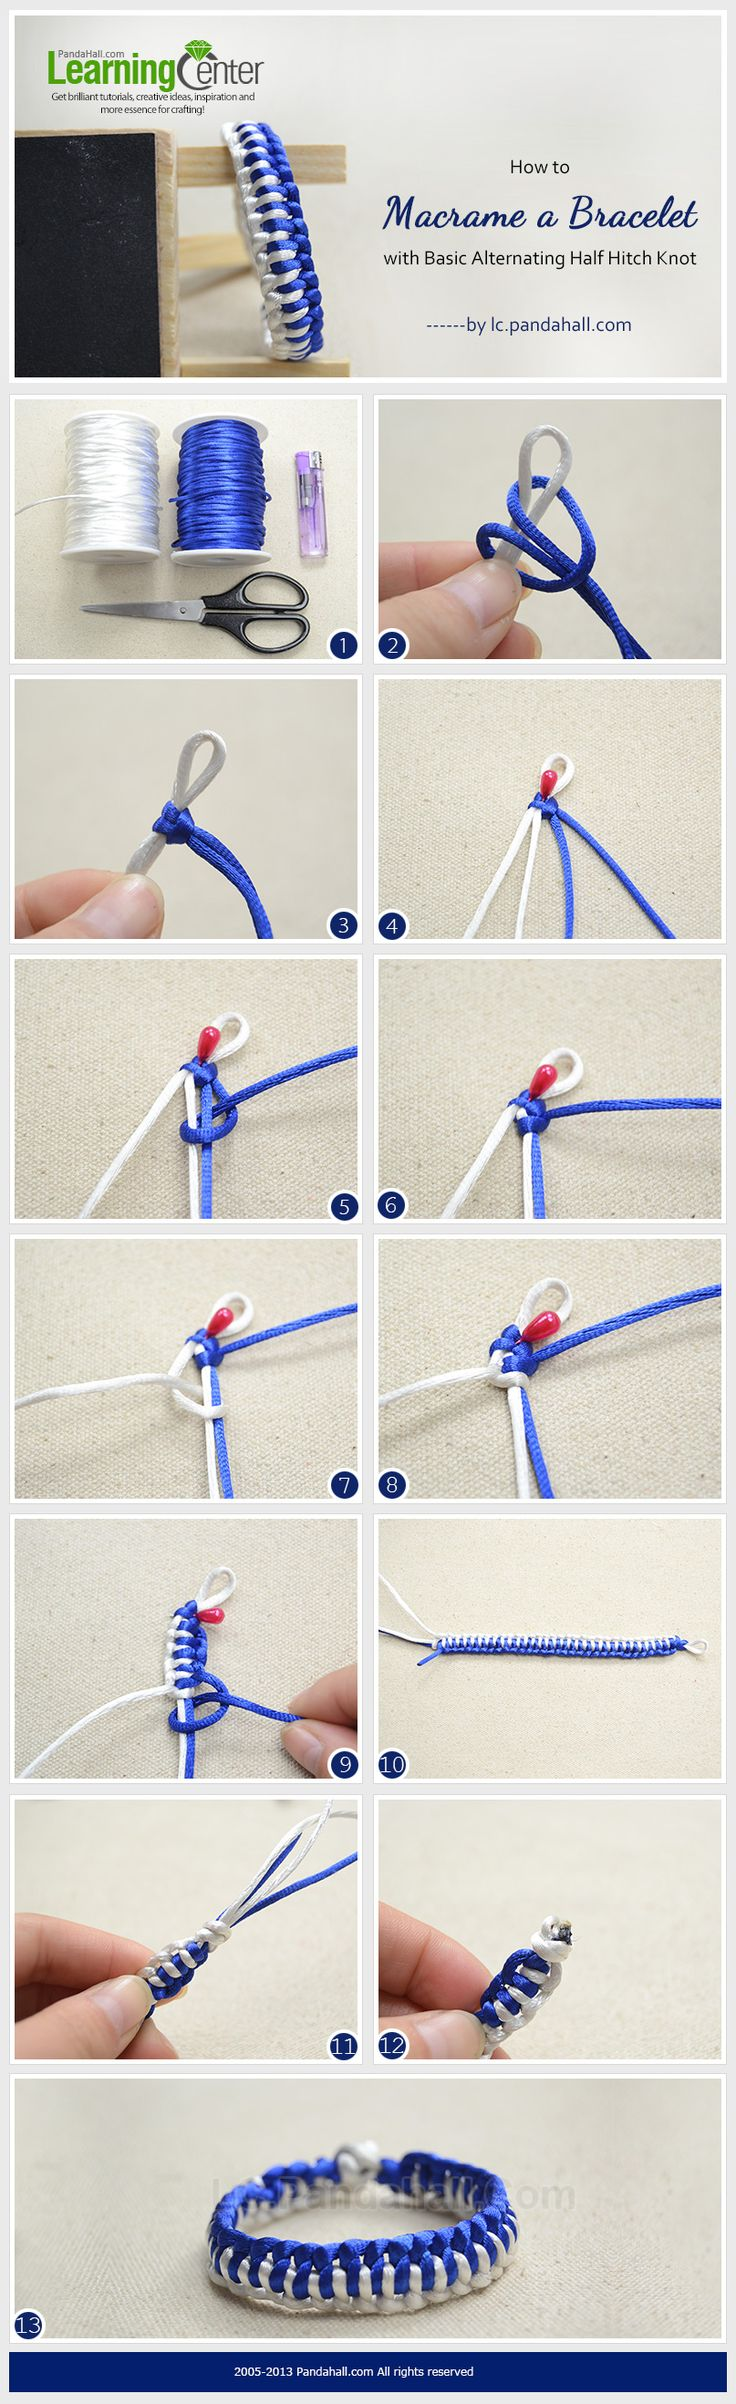 How to Macrame a Bracelet with Basic Alternating Half Hitch Knot